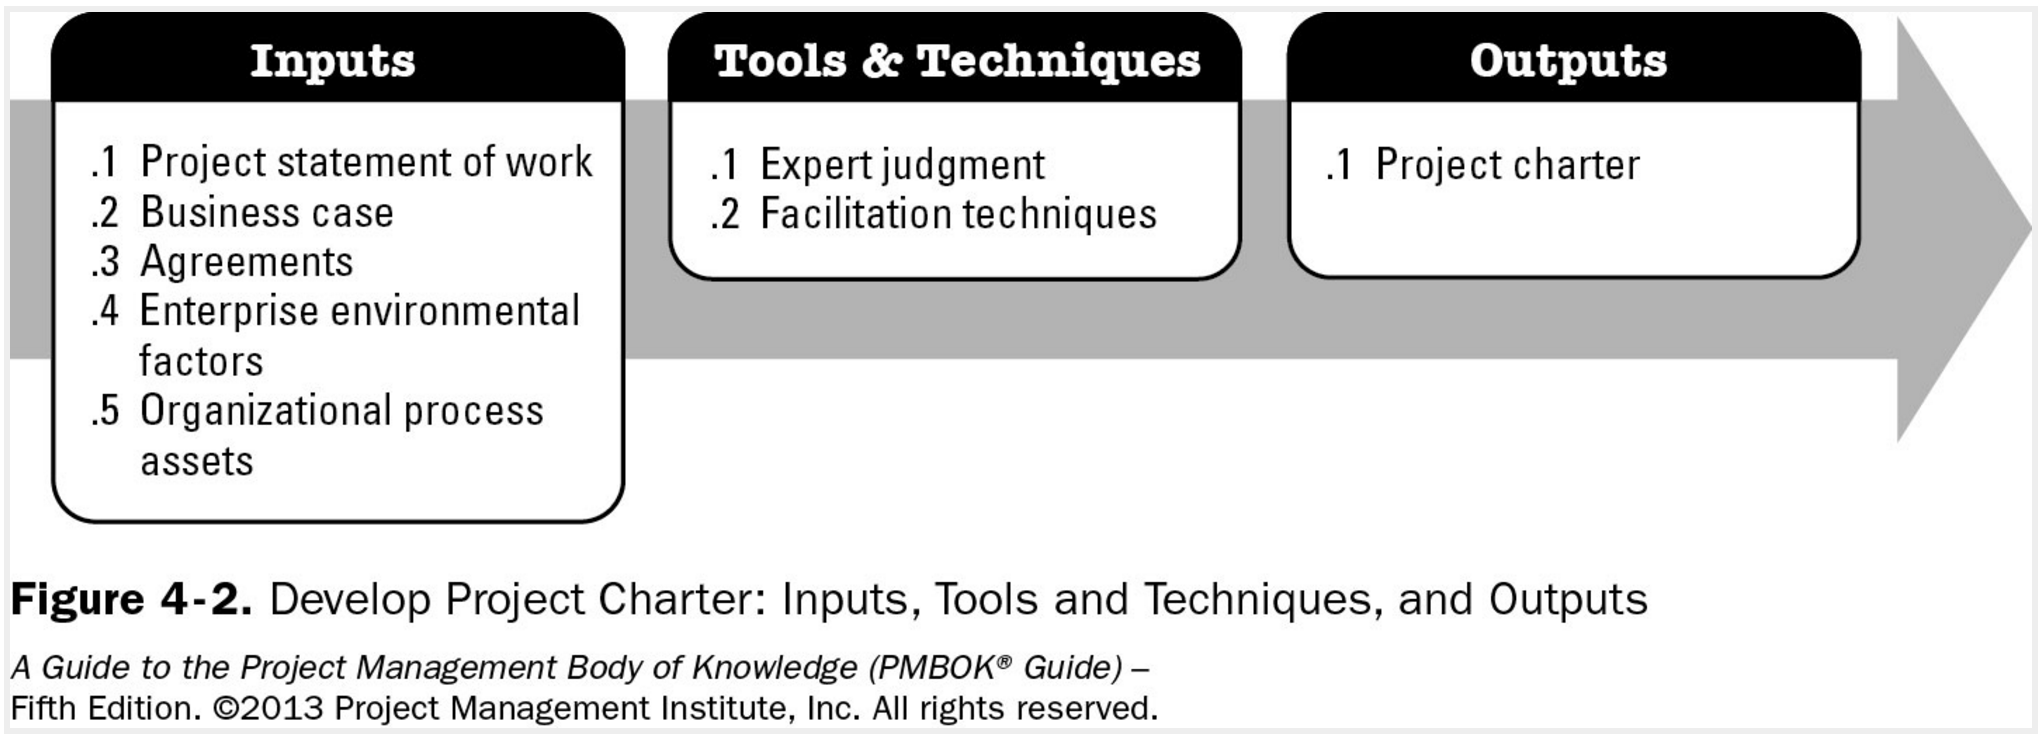 Pmp 5th edition itto commonly asked questions answered develop project charter process itto 1betcityfo Gallery